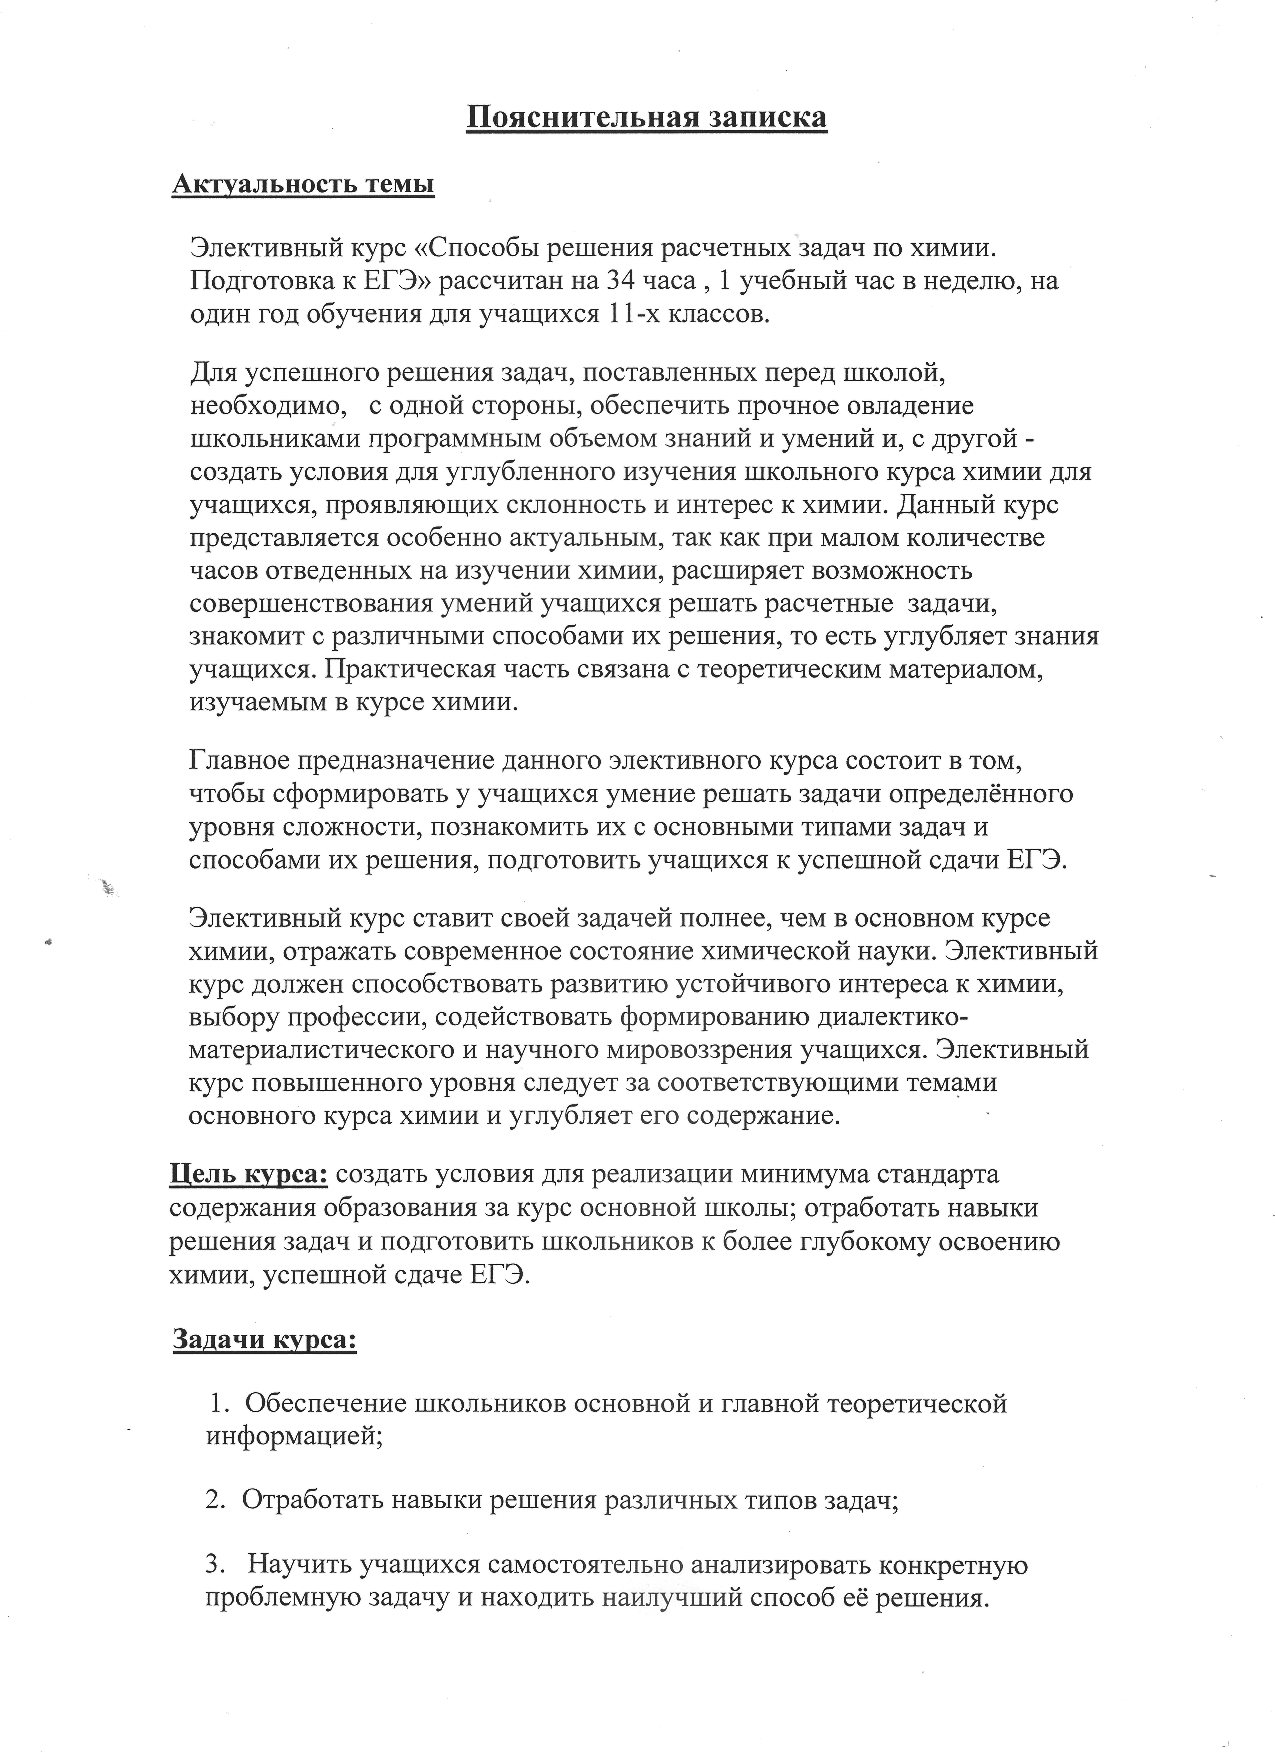 C:\Users\admin\Pictures\Новая папка\img058.jpg